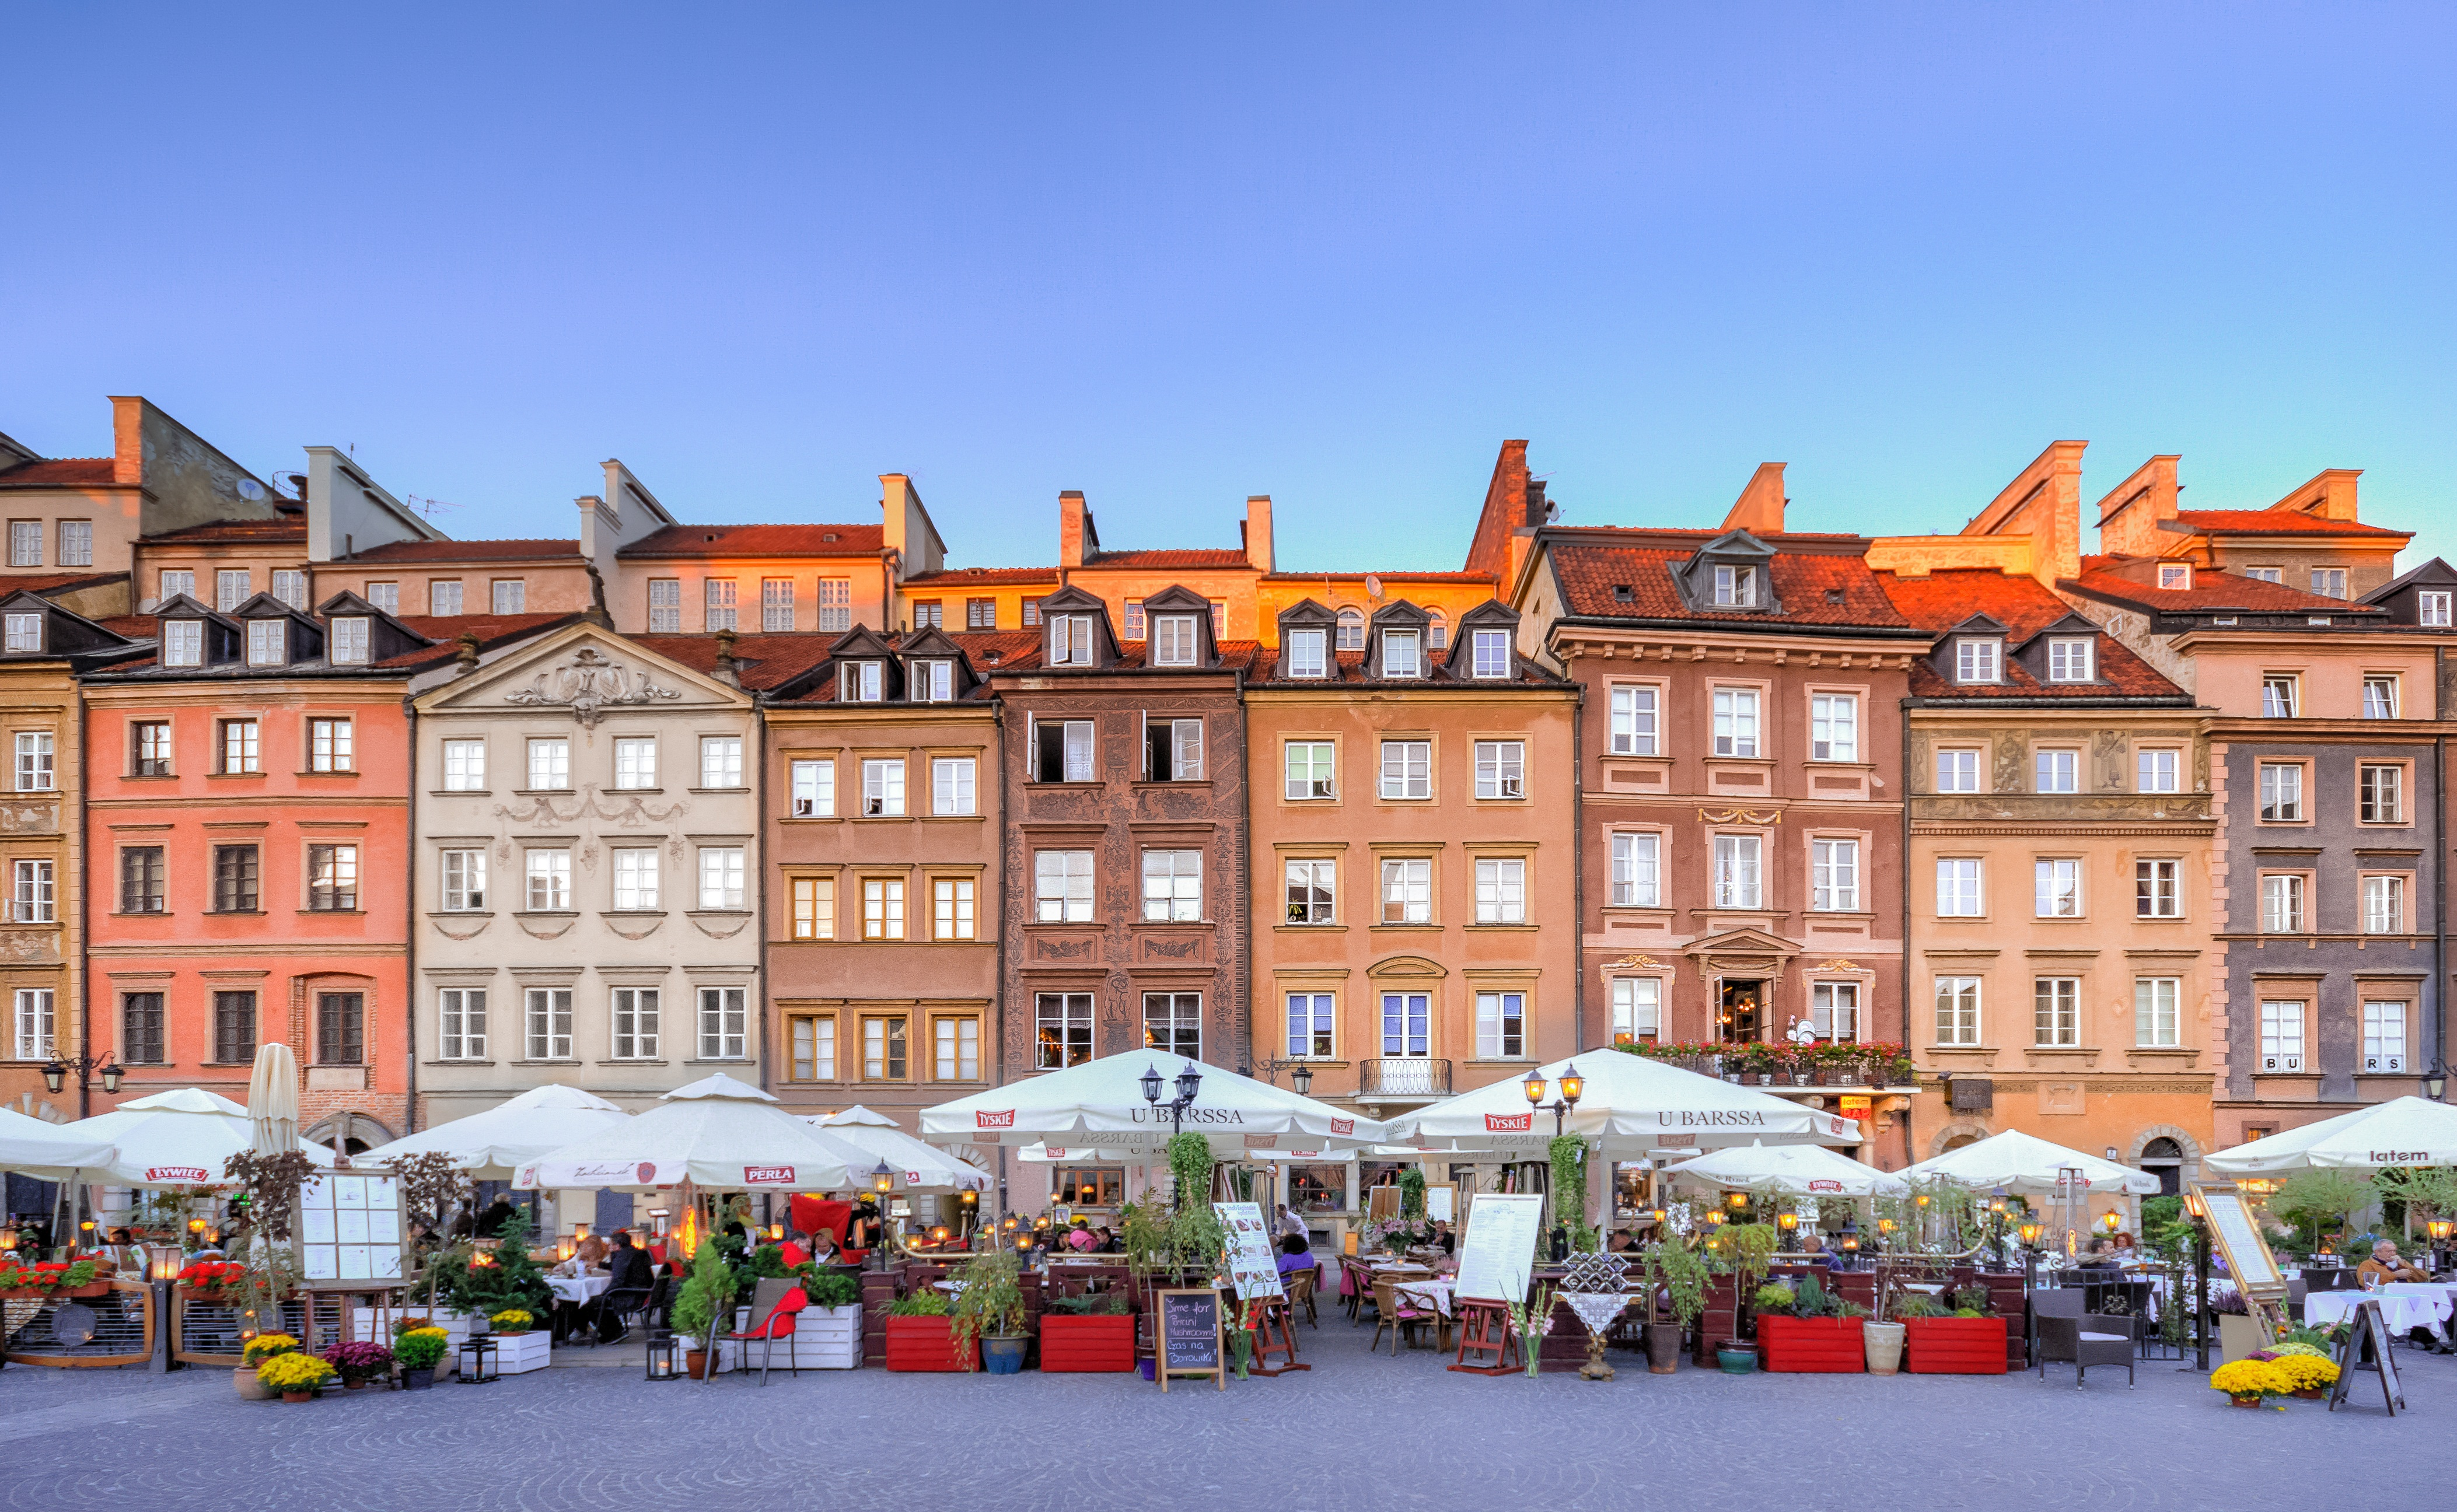 Things to do and see in Warsaw